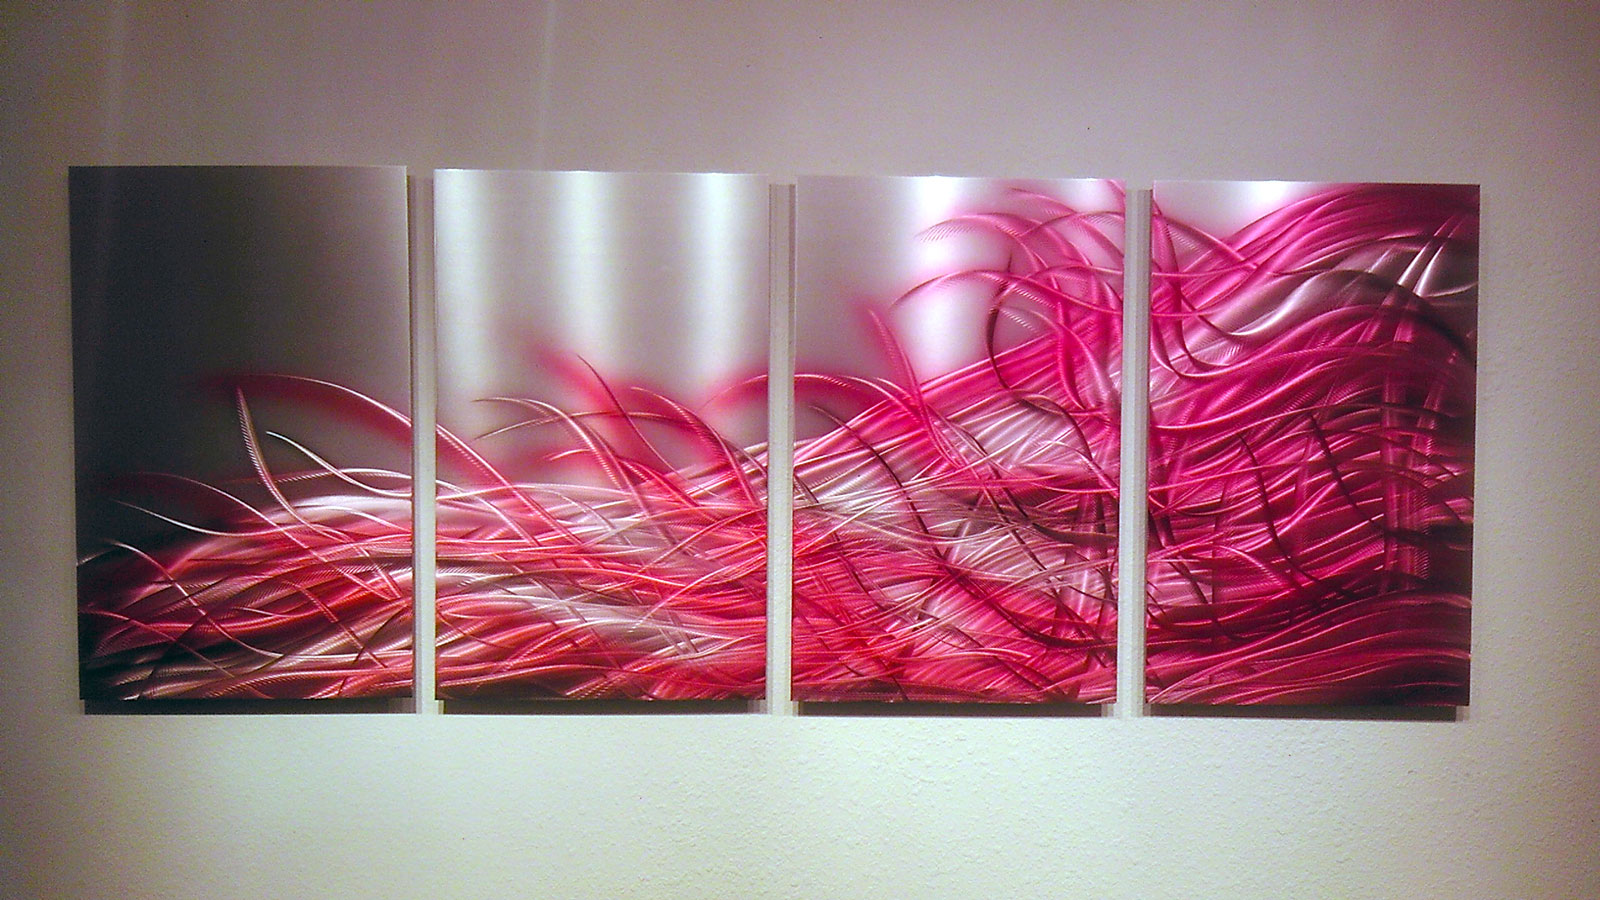 Red Metal Wall Decor: Resonance Red- Metal Wall Art Abstract Contemporary Modern